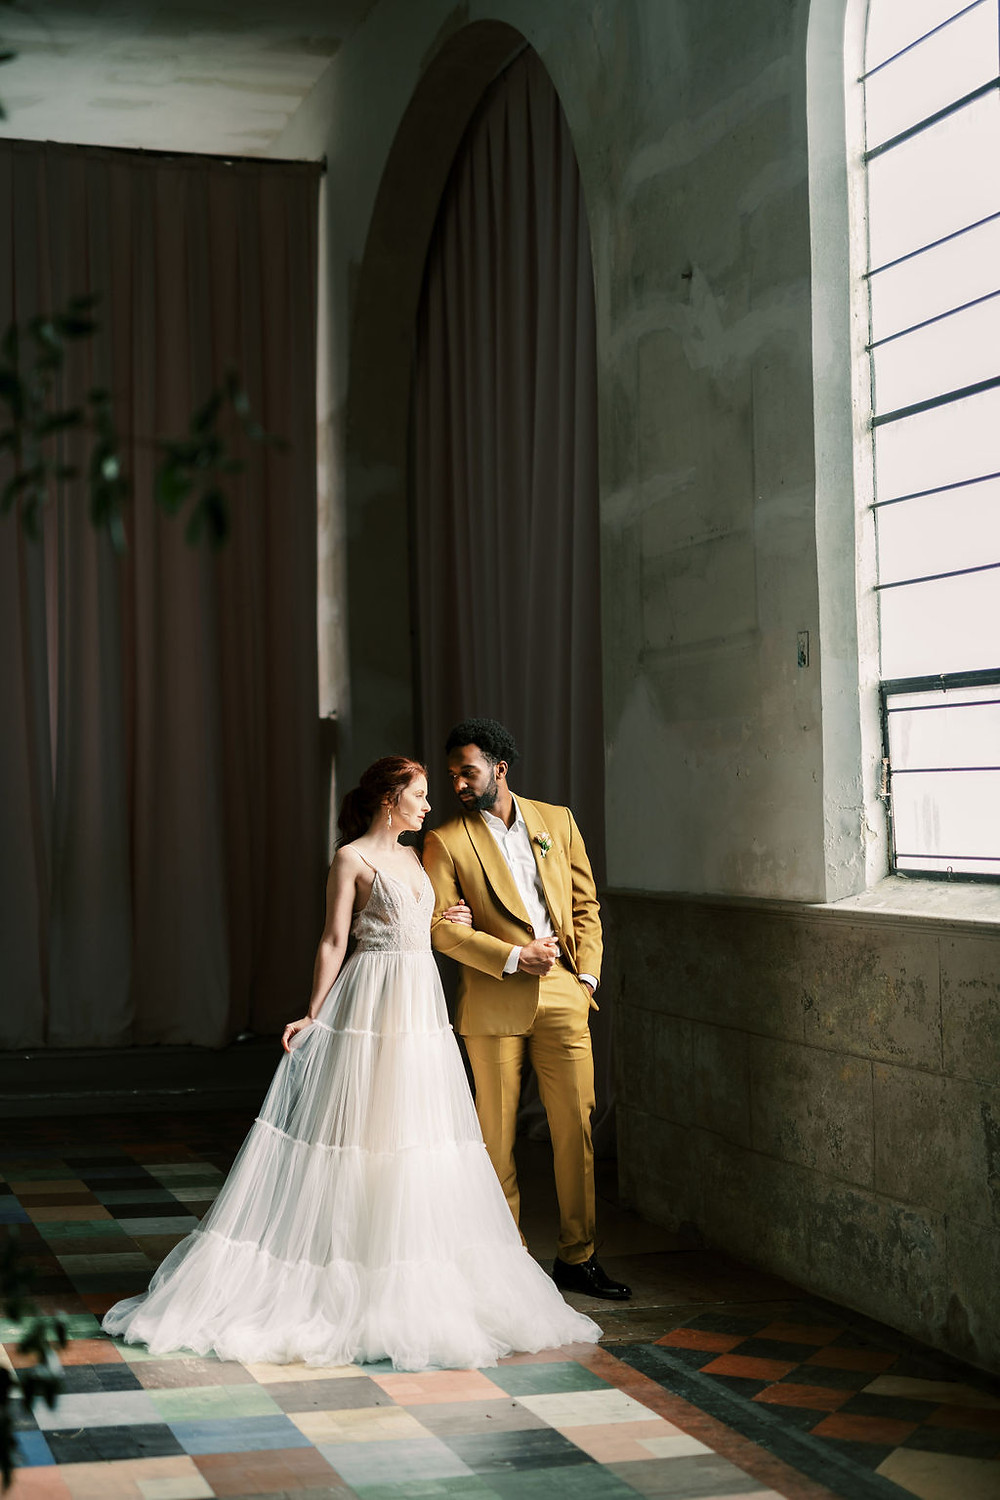 Bride and Groom for Bridgerton Inspired Wedding at the Marigny Opera House in New Orleans with Decor and Vintage Furniture by Lovegood Rentals